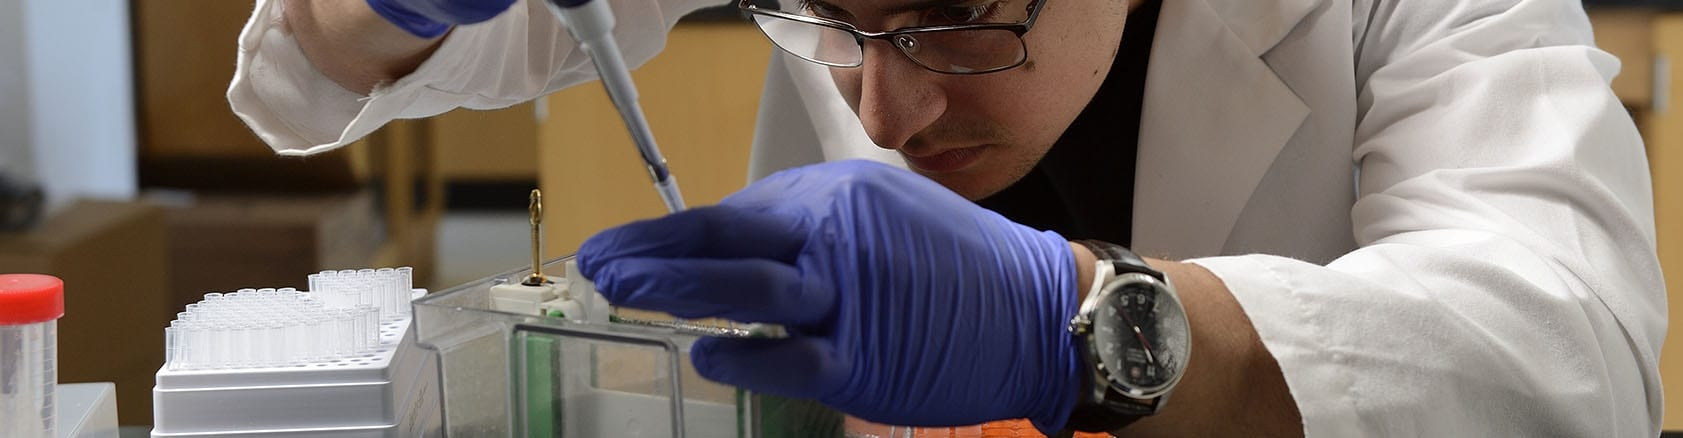 student concentrated on lab work, leaning over project in gloves